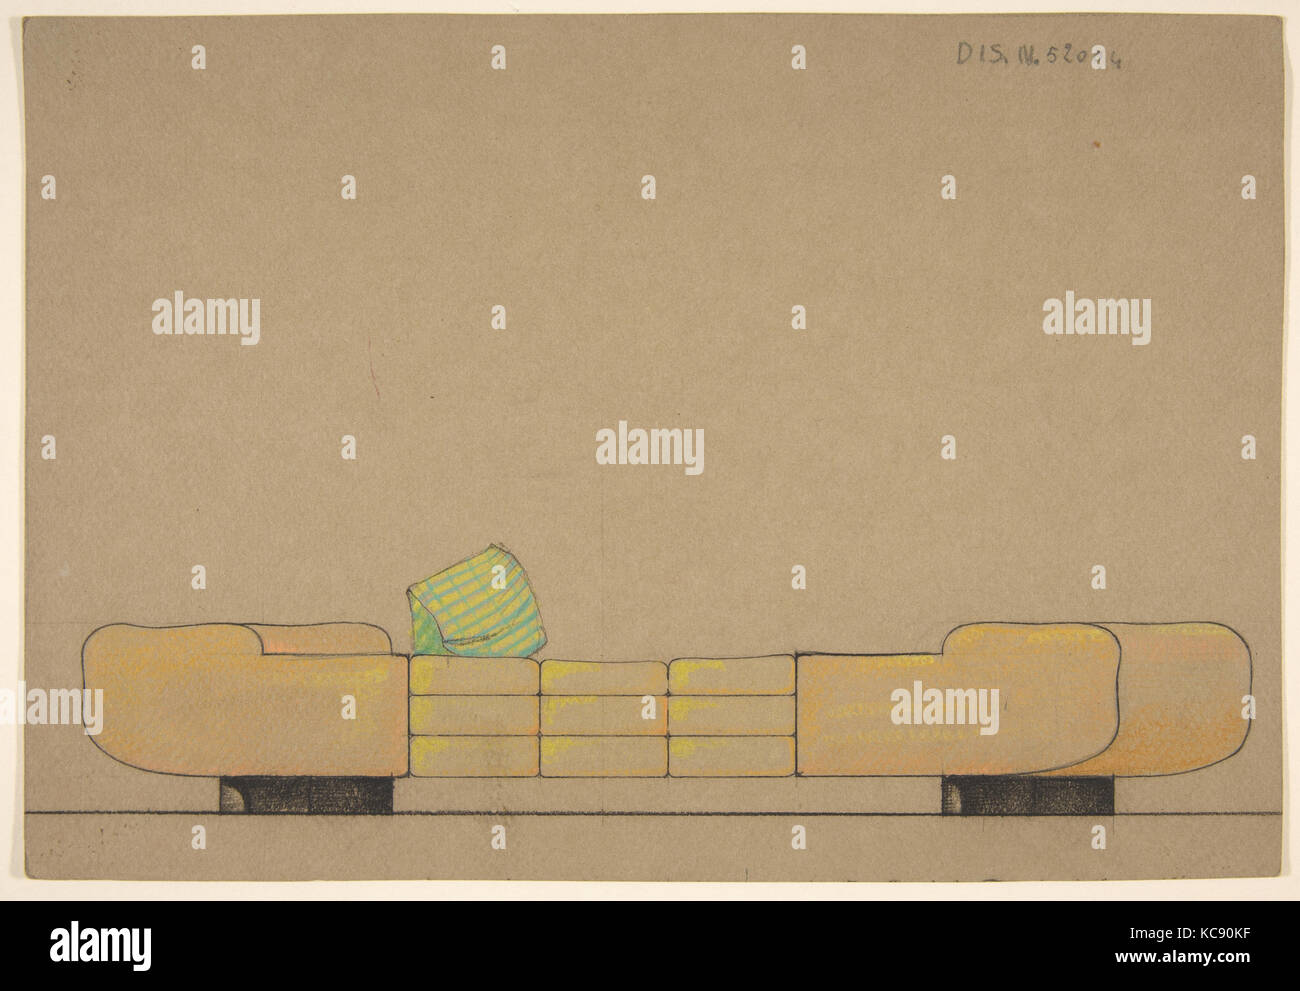 Elevation of a Daybed on Black Bases, Guglielmo Ulrich, 1932 - Stock Image